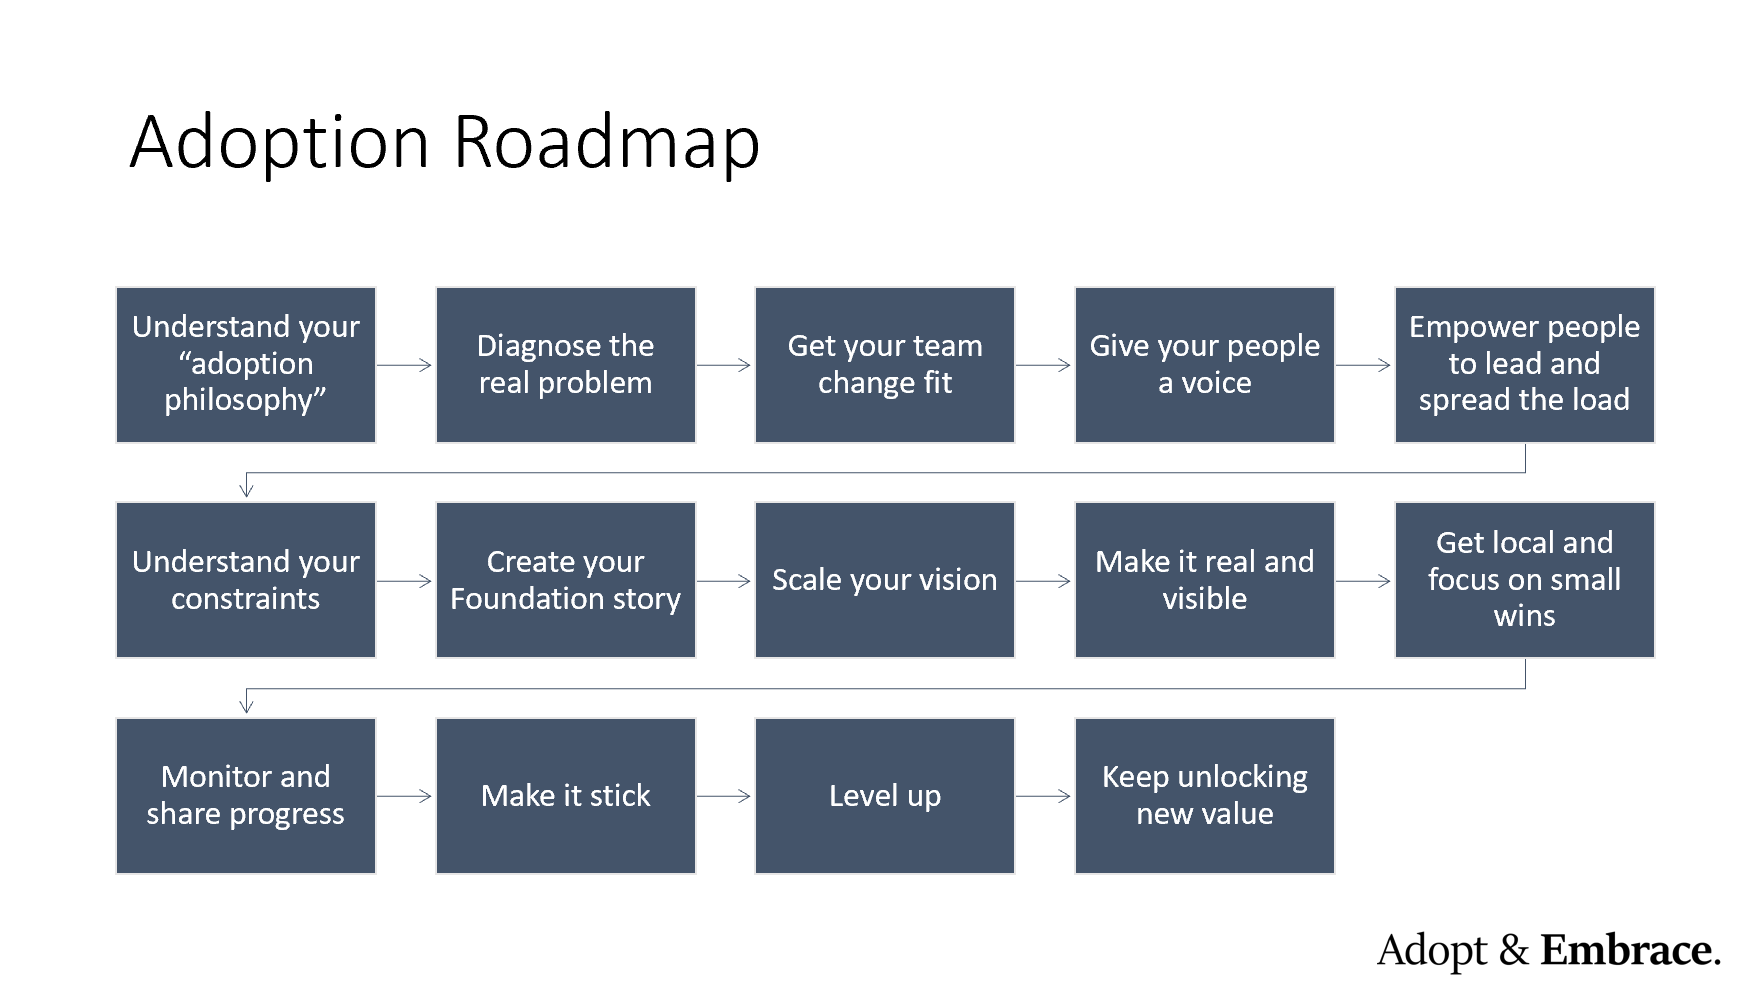 Visual depiction of the 14 steps of the Adopt & Embrace Adoption Roadmap